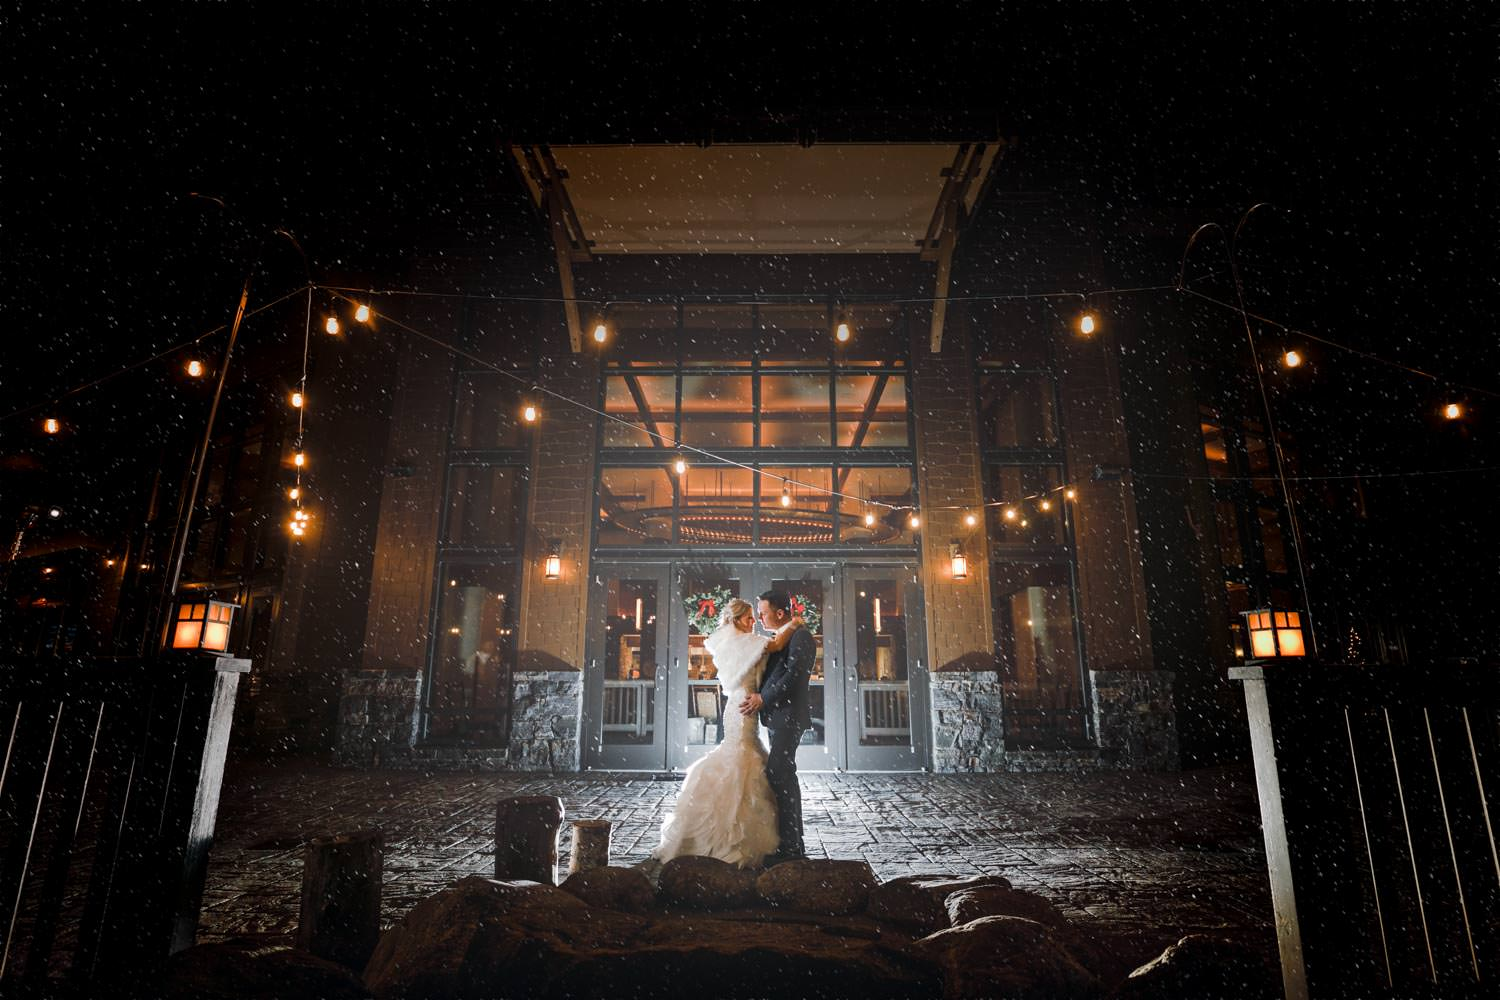 bride and groom standing in front of lodge for night photography at Stowe Mountain resort with winter holiday lights and fire pit